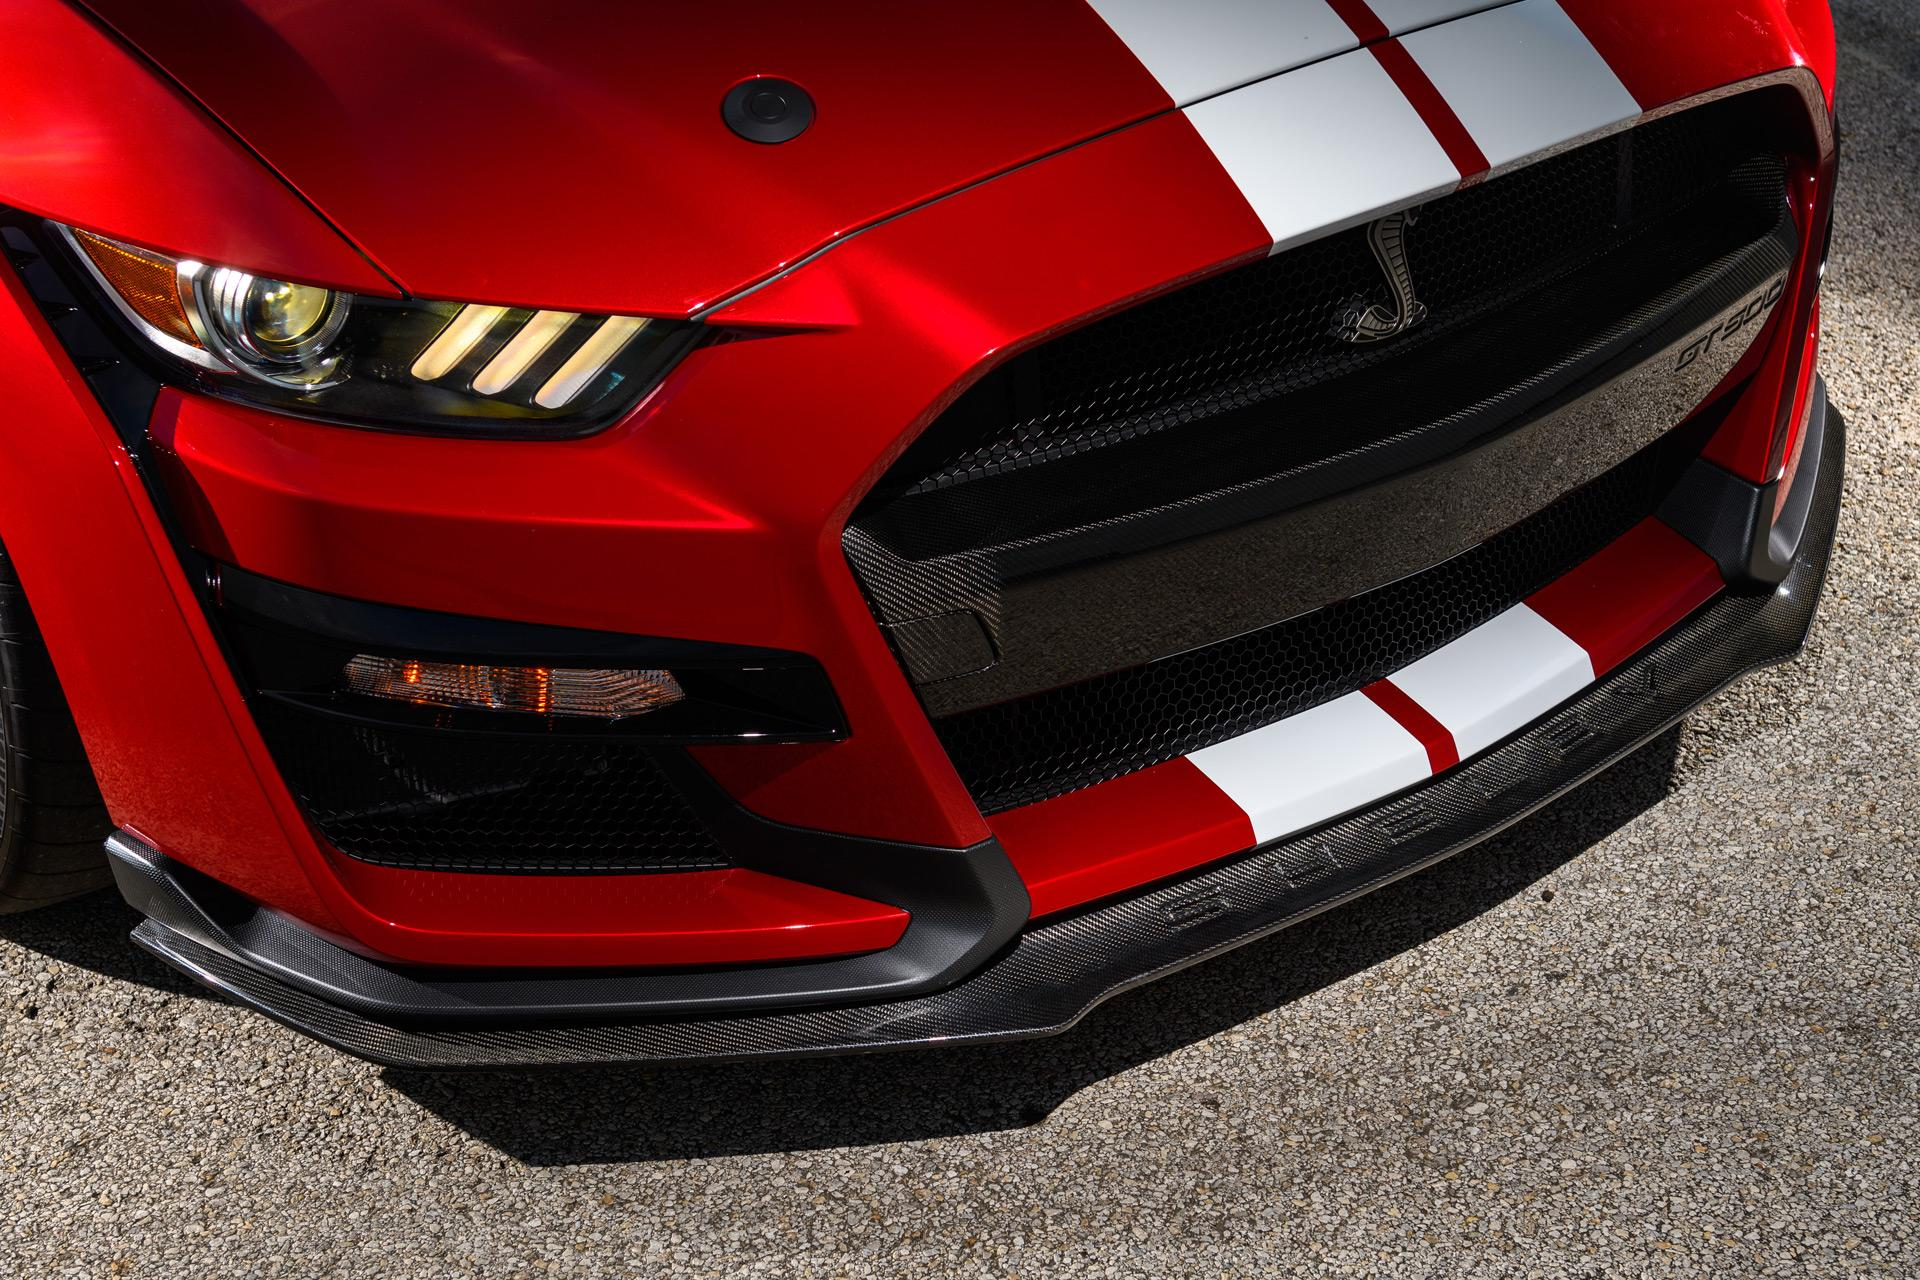 Ford mustang gt500 carbon fiber front splitter from ford performance 100789903 h